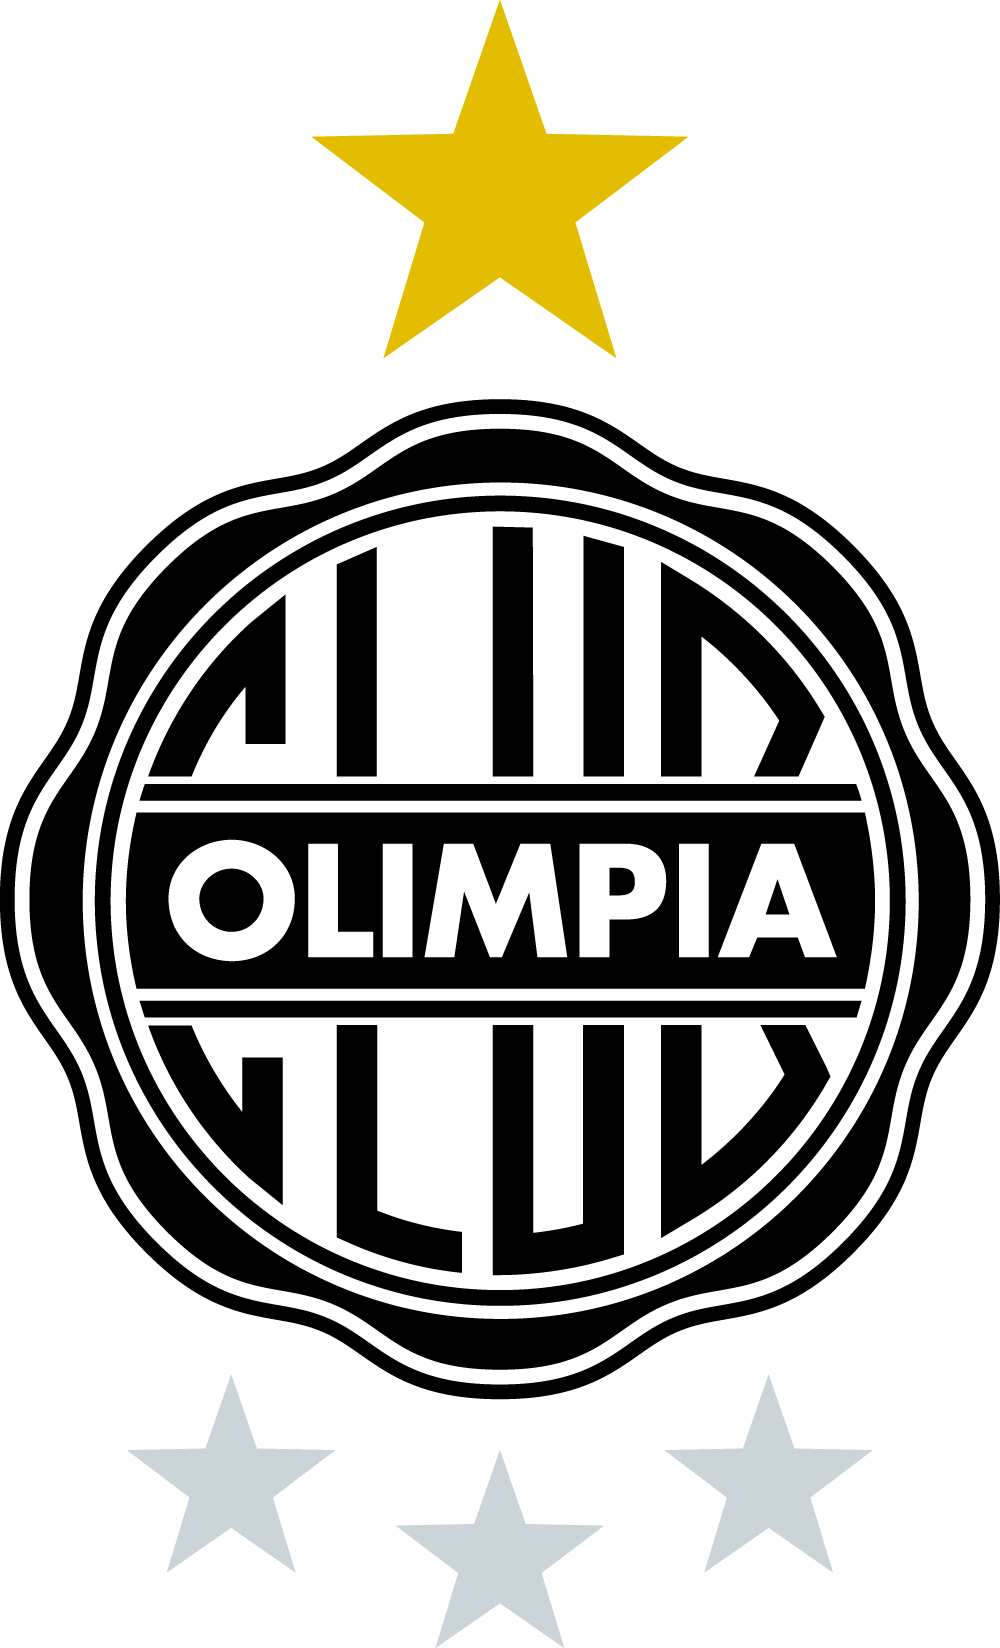 Club Olimpia Logo Ideas Pinterest Football Soccer And Futbol